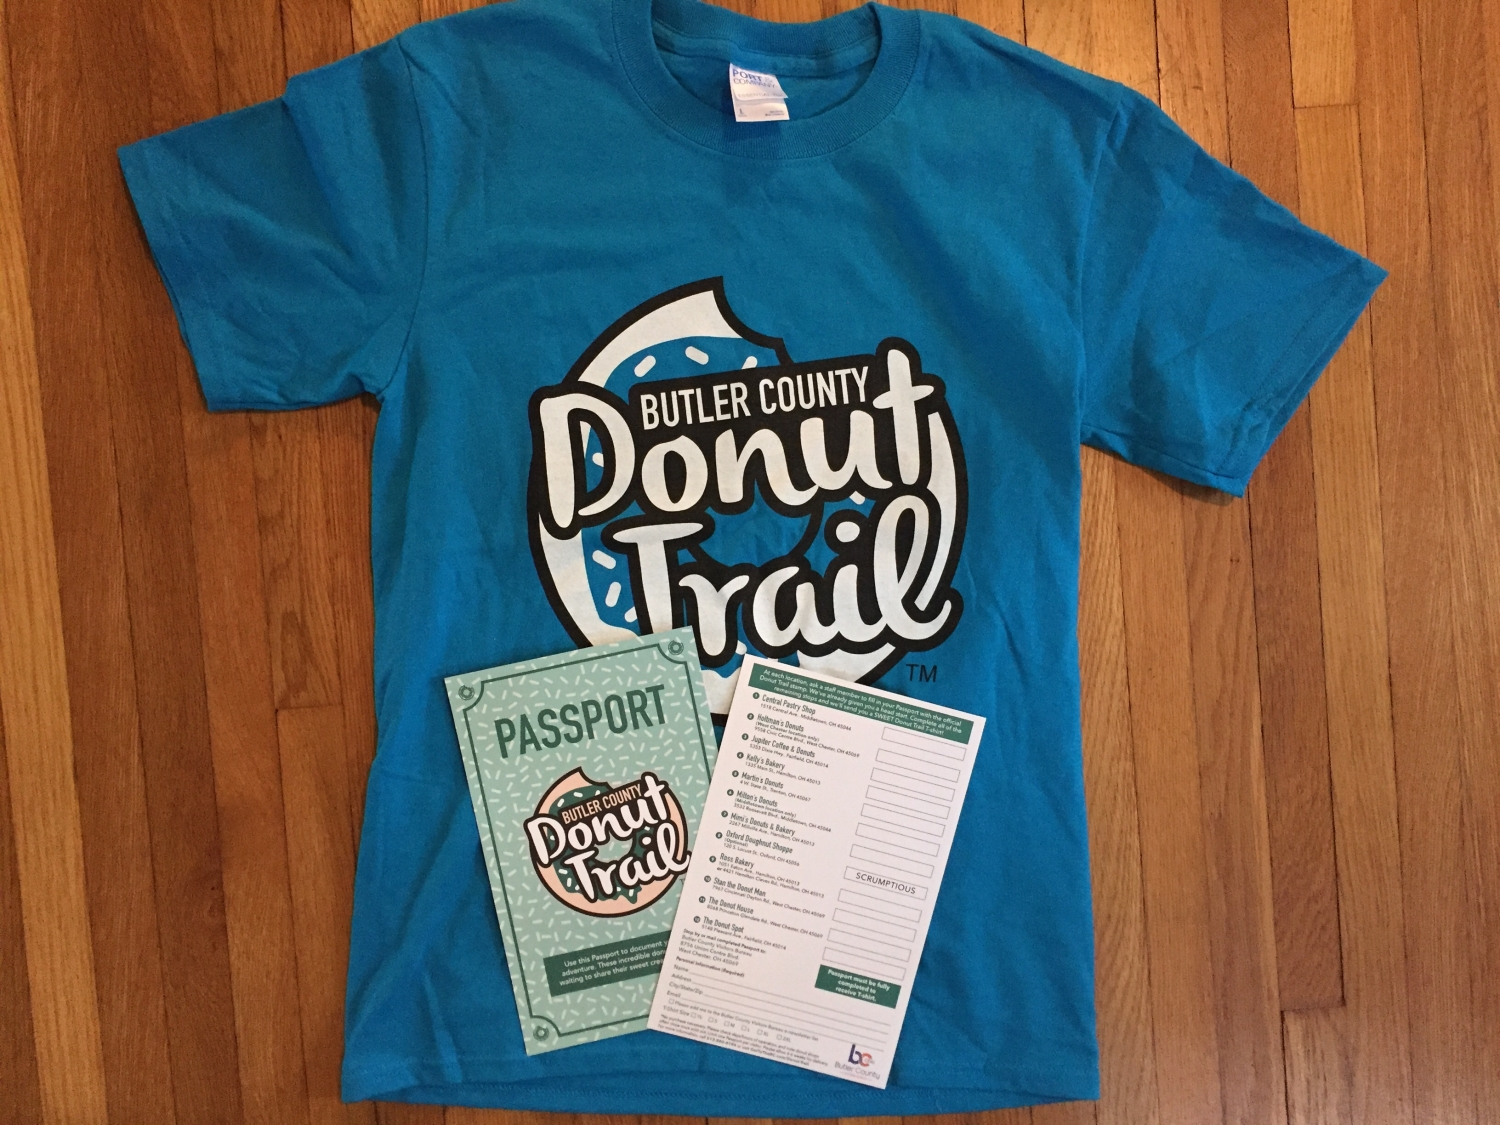 Butler County Donut Trail t-shirt and passport